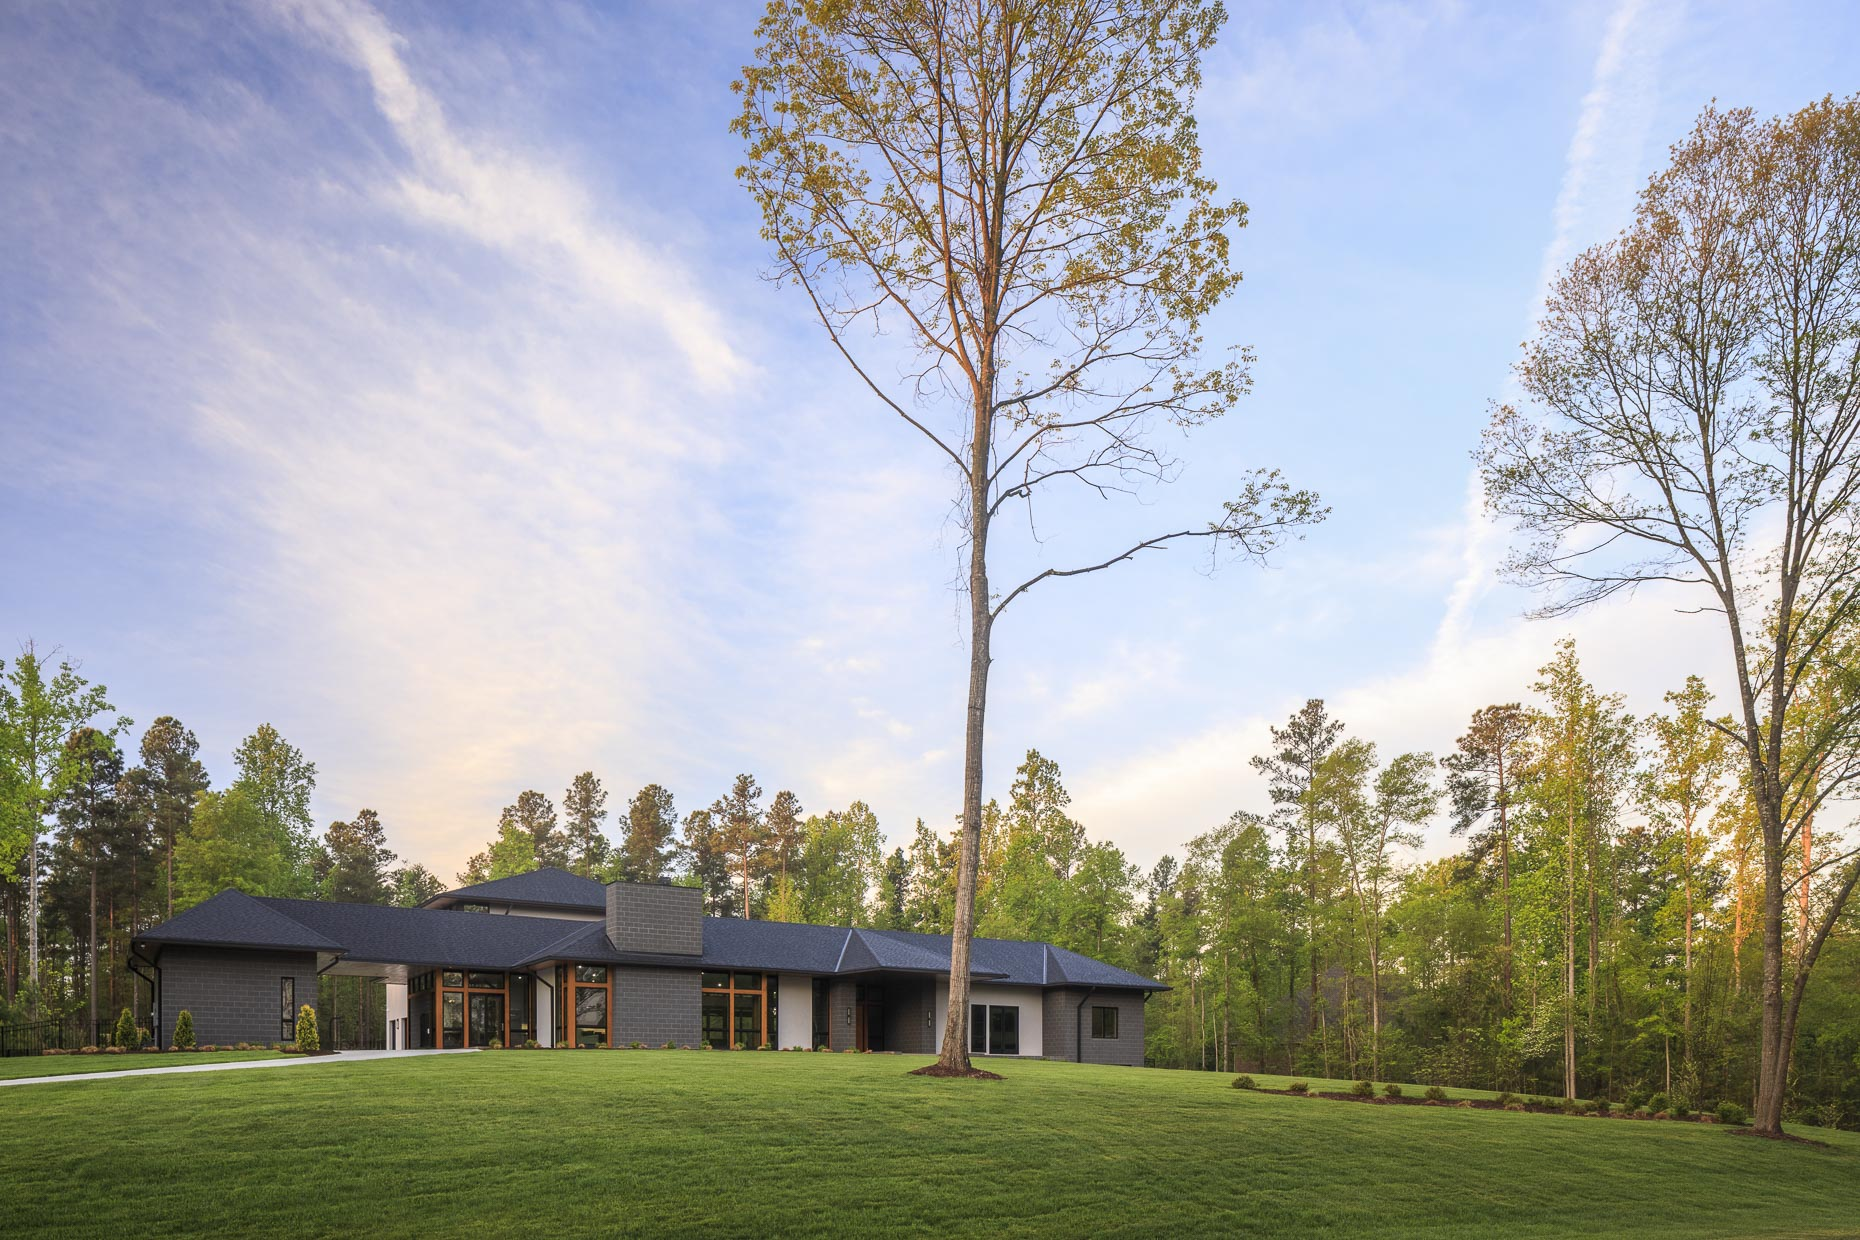 Lake Wylie Private Residence by Studio MM photographed by Brad Feinknopf based in Columbus, Ohio